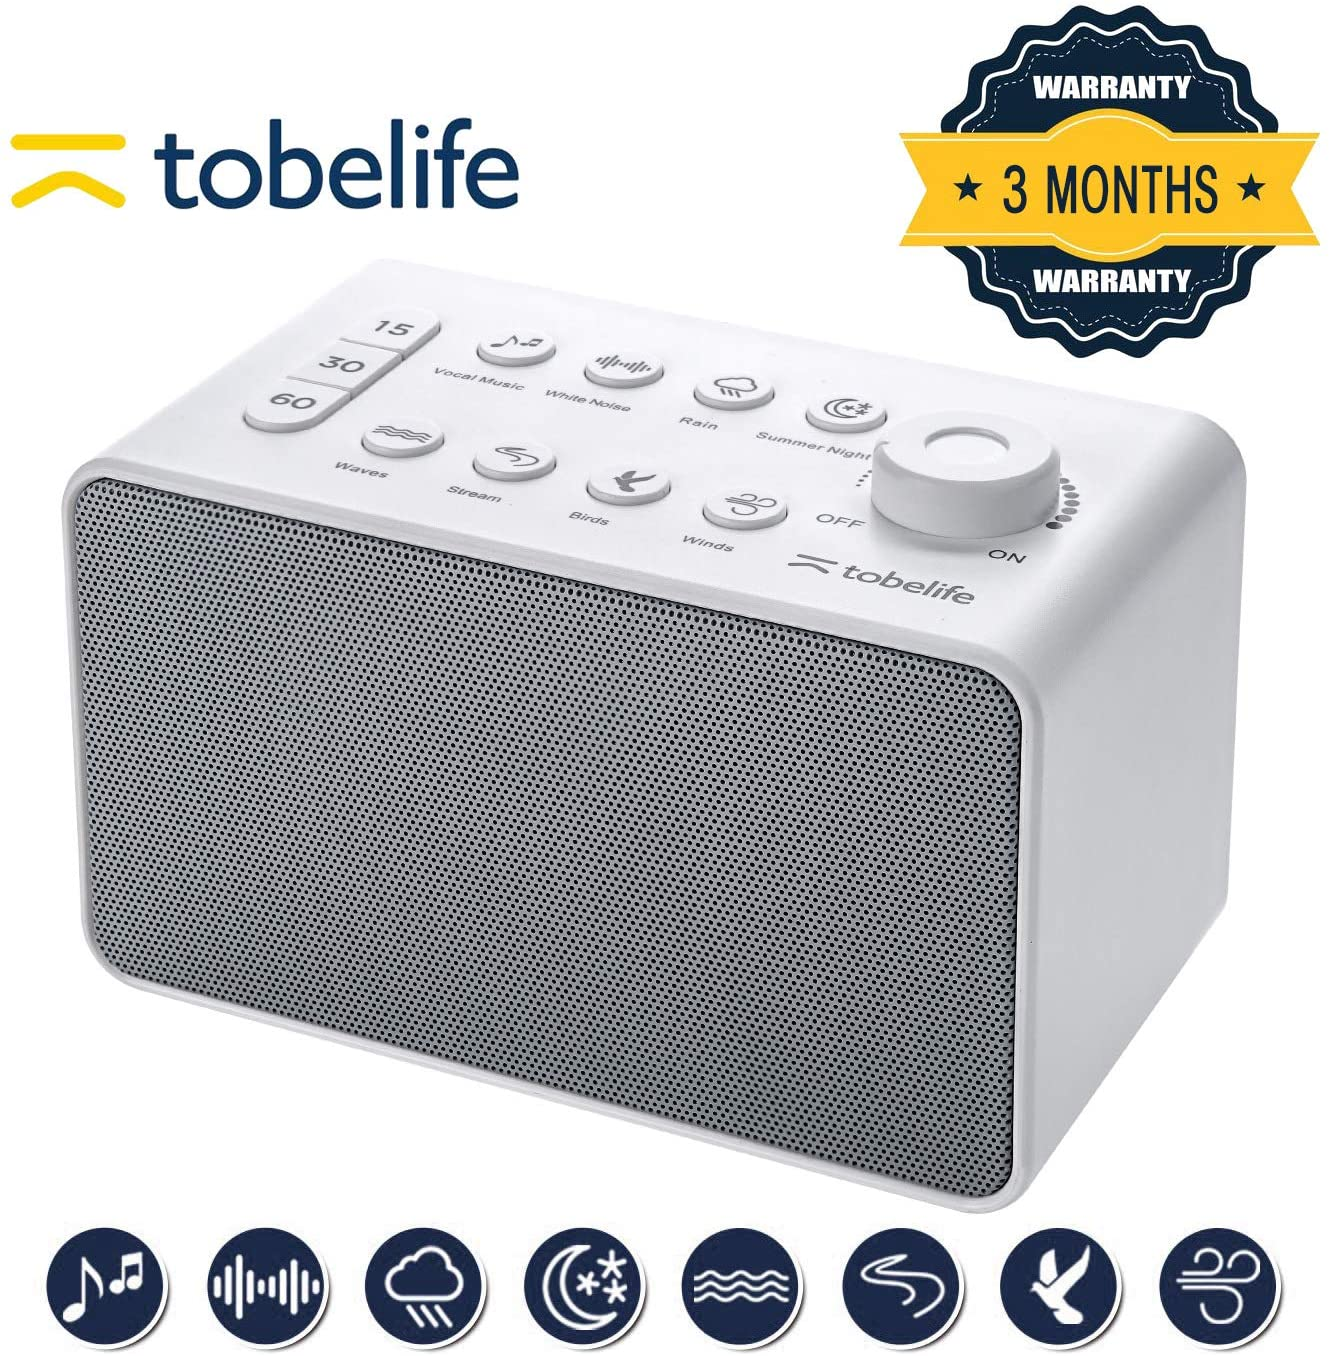 Tobelife Sounds Machine | White Noise Machine for Sleeping | Portable Sleep Therapy for Adults & Children 8 Soothing Sounds Machine | Sleep Sound for for Home, Office or Travel